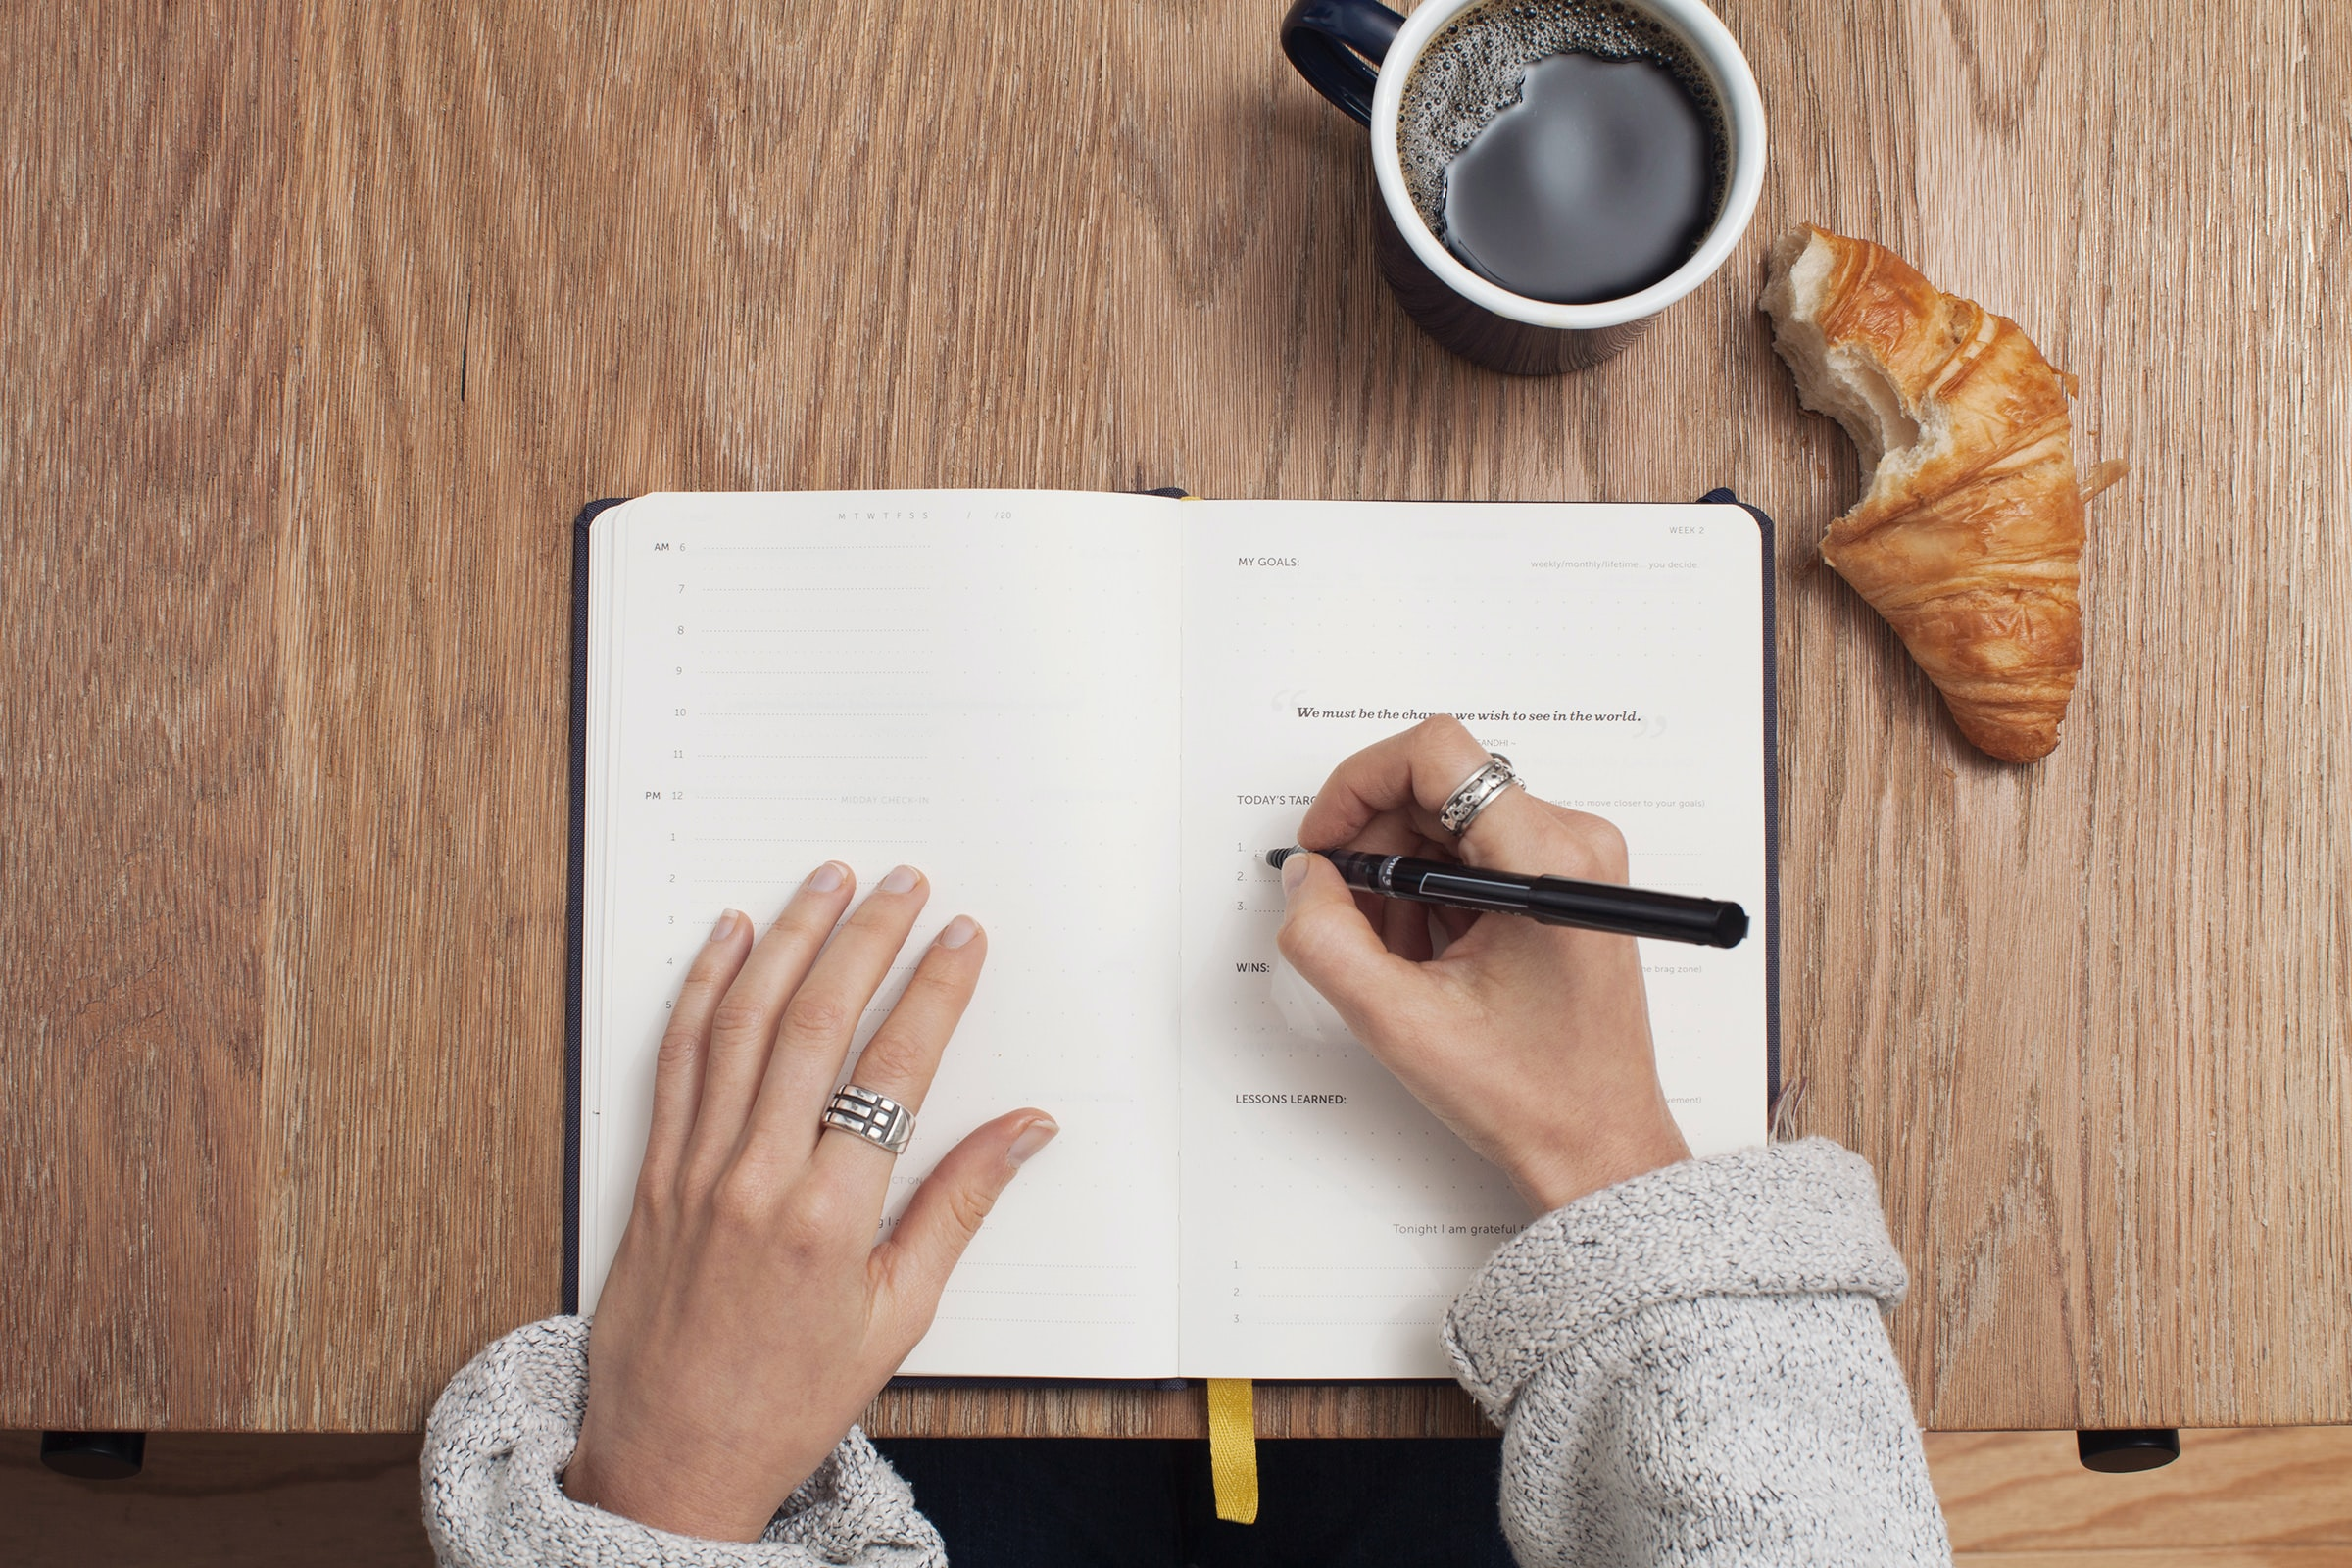 Setting Short and Long-Term Goals To Get What You Want